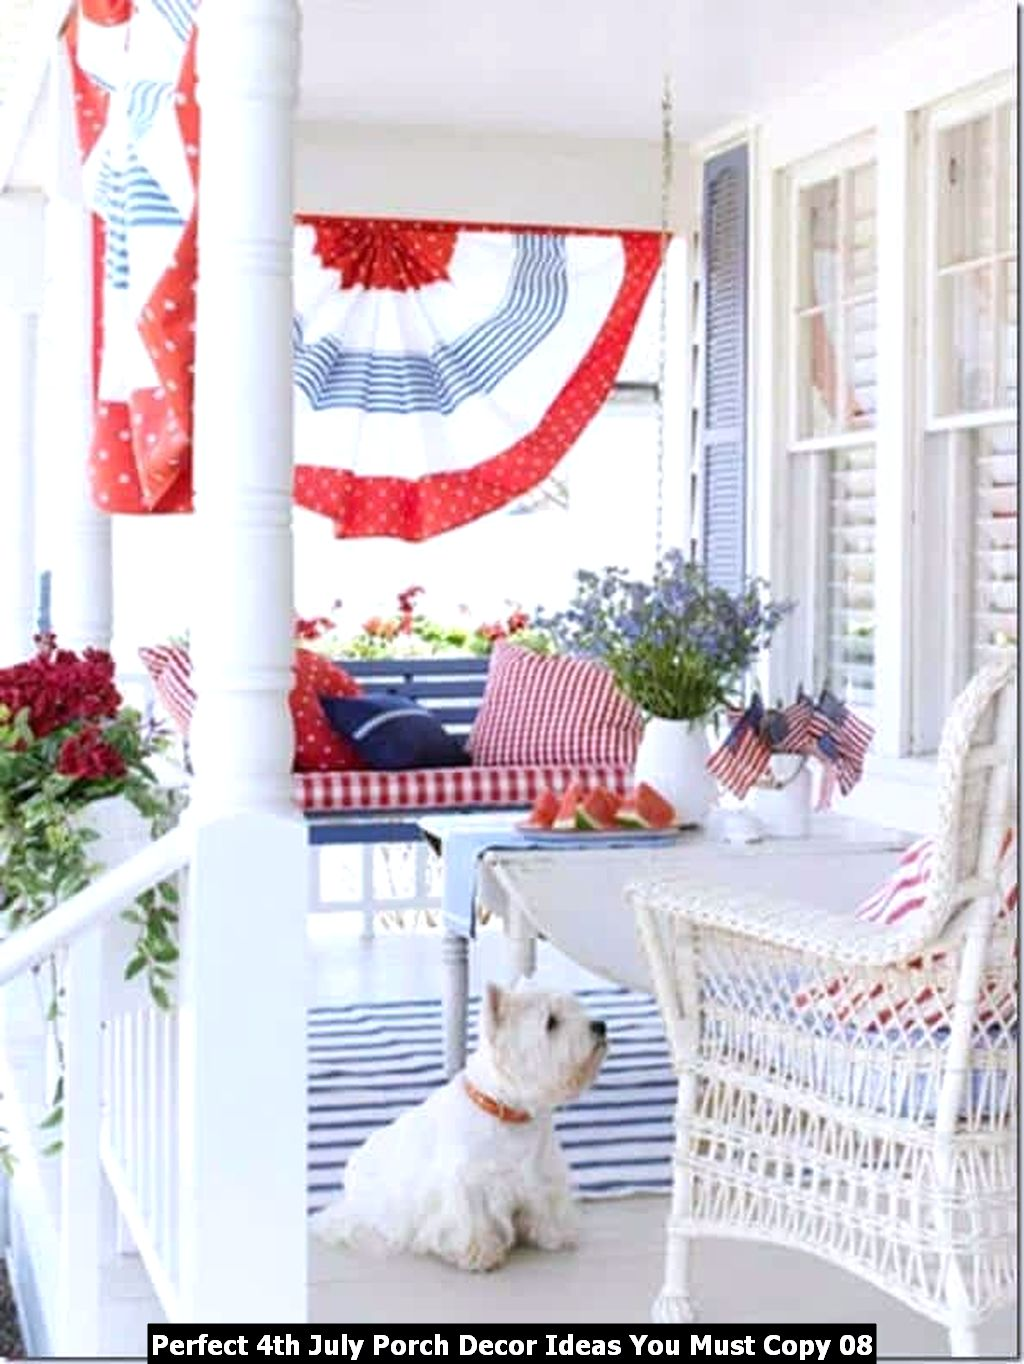 Perfect 4th July Porch Decor Ideas You Must Copy 08